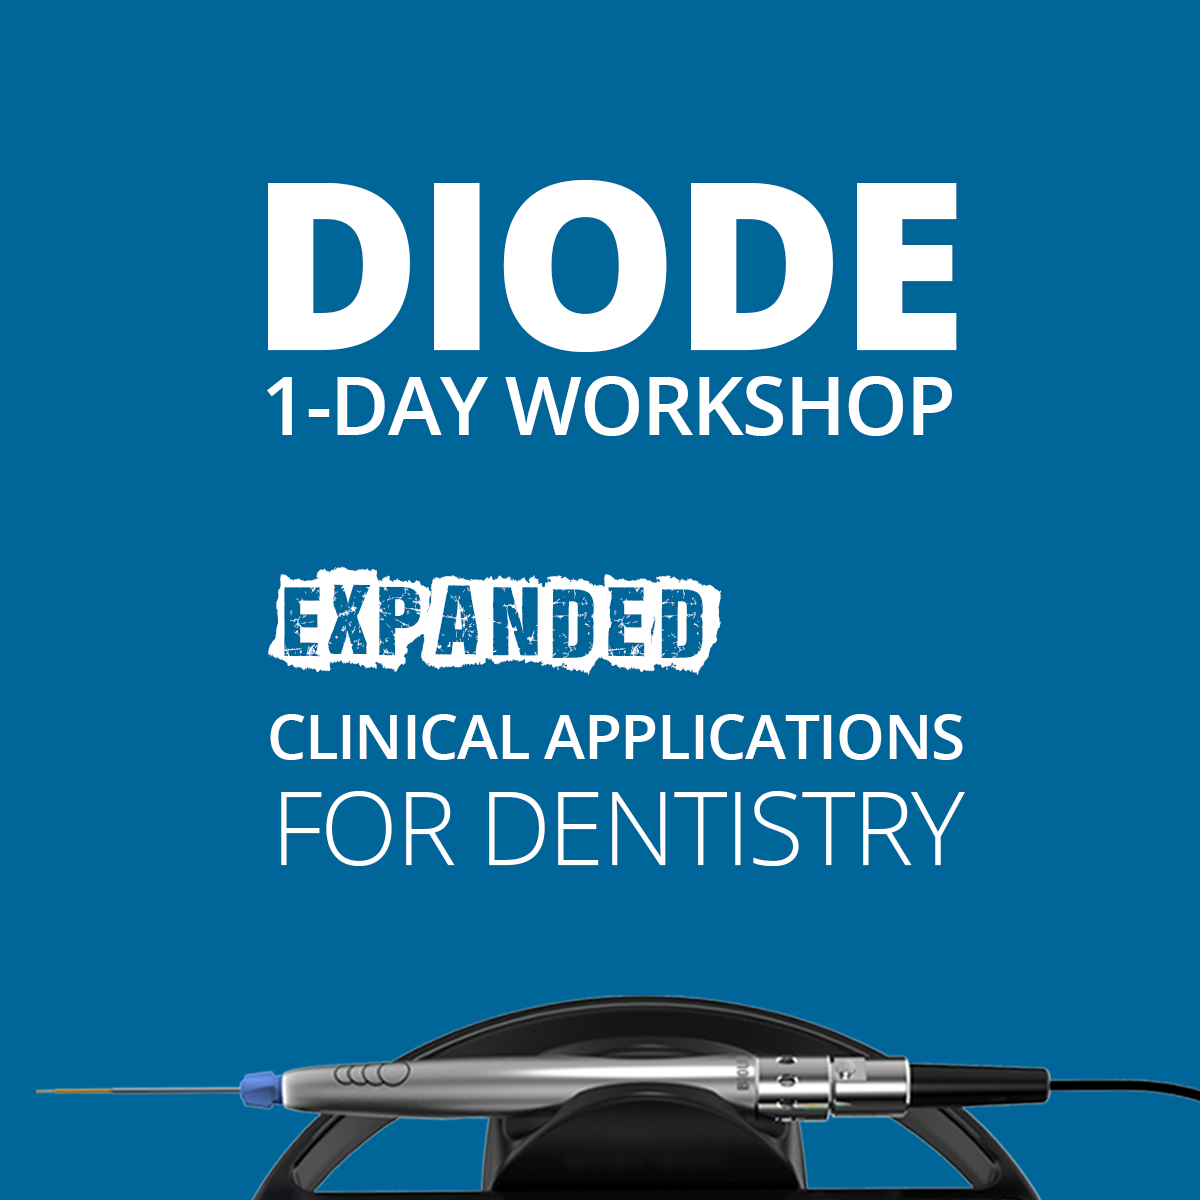 Diode Lasers in Dentistry Clinical Workshop, 1 Day